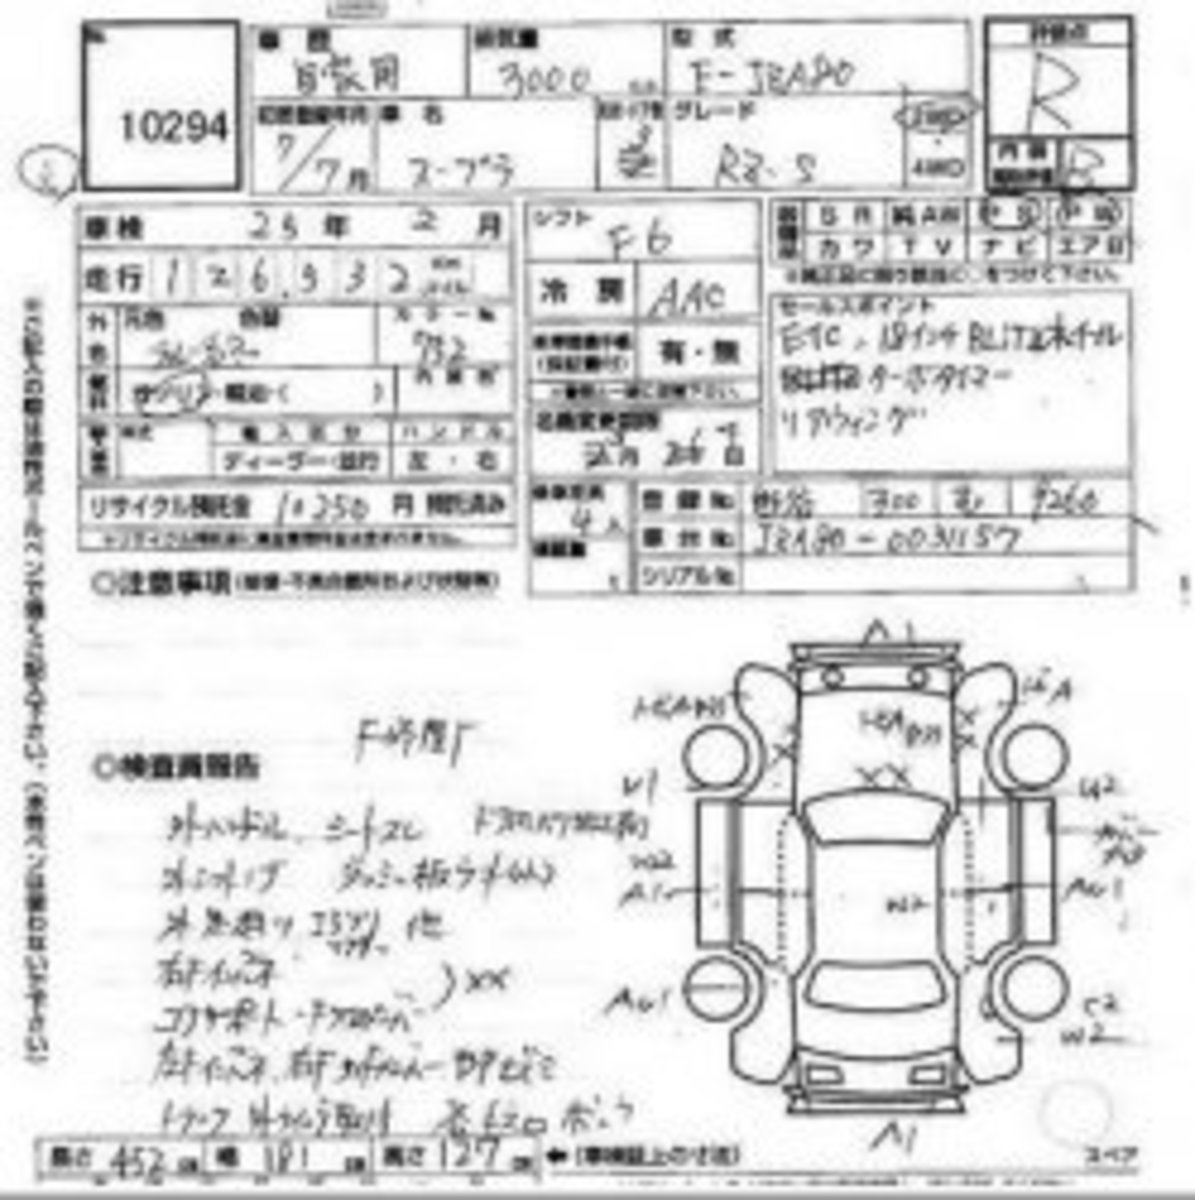 aqua-prius-fit-or-vezel-a-hybrid-vehicle-buying-guide-from-japanese-auctions